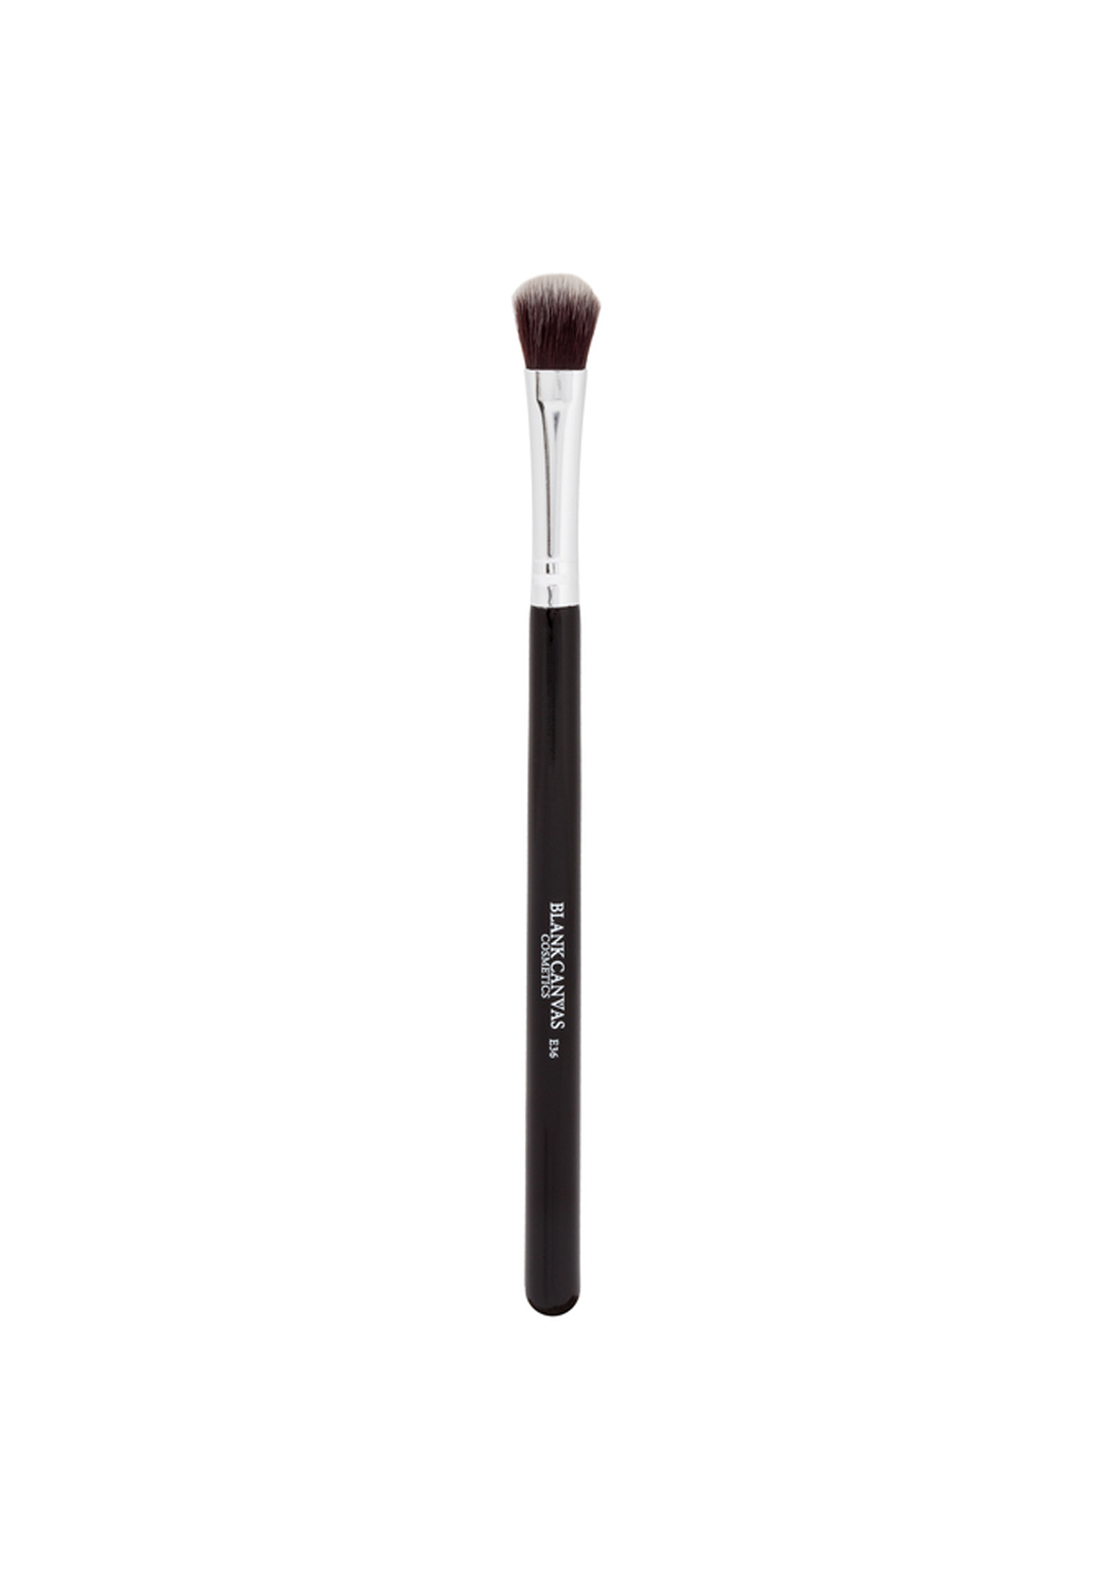 Blank Canvas Cosmetics E36 Large Concealer / Eye Shader Brush